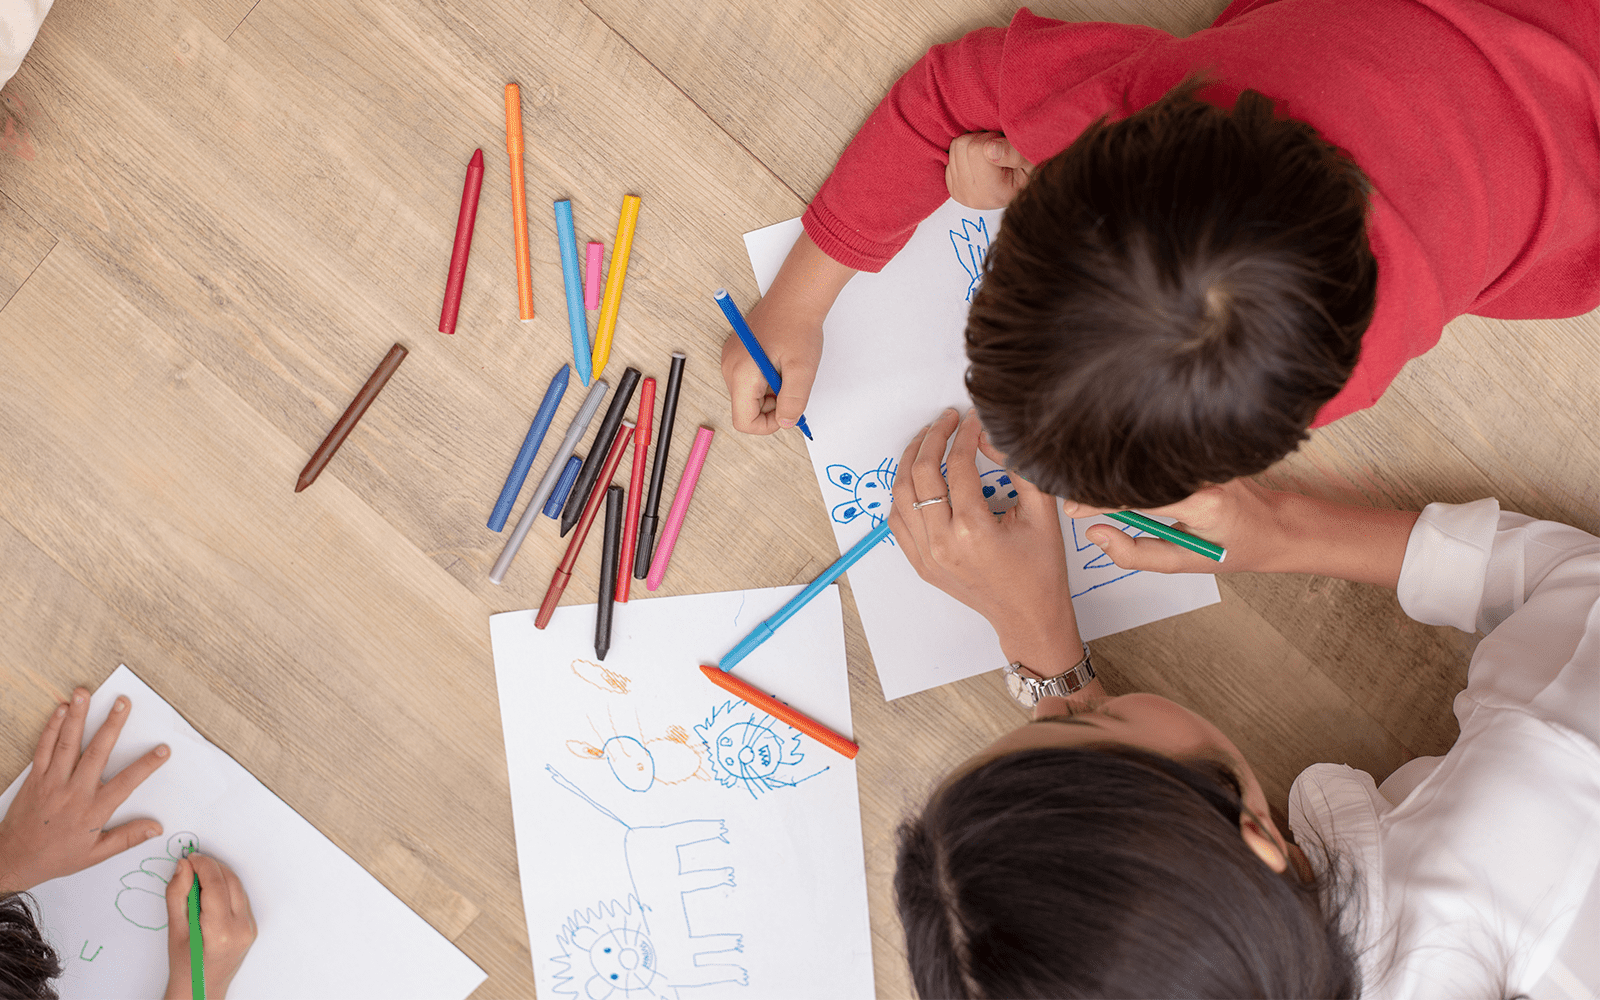 Young child and teacher drawing together